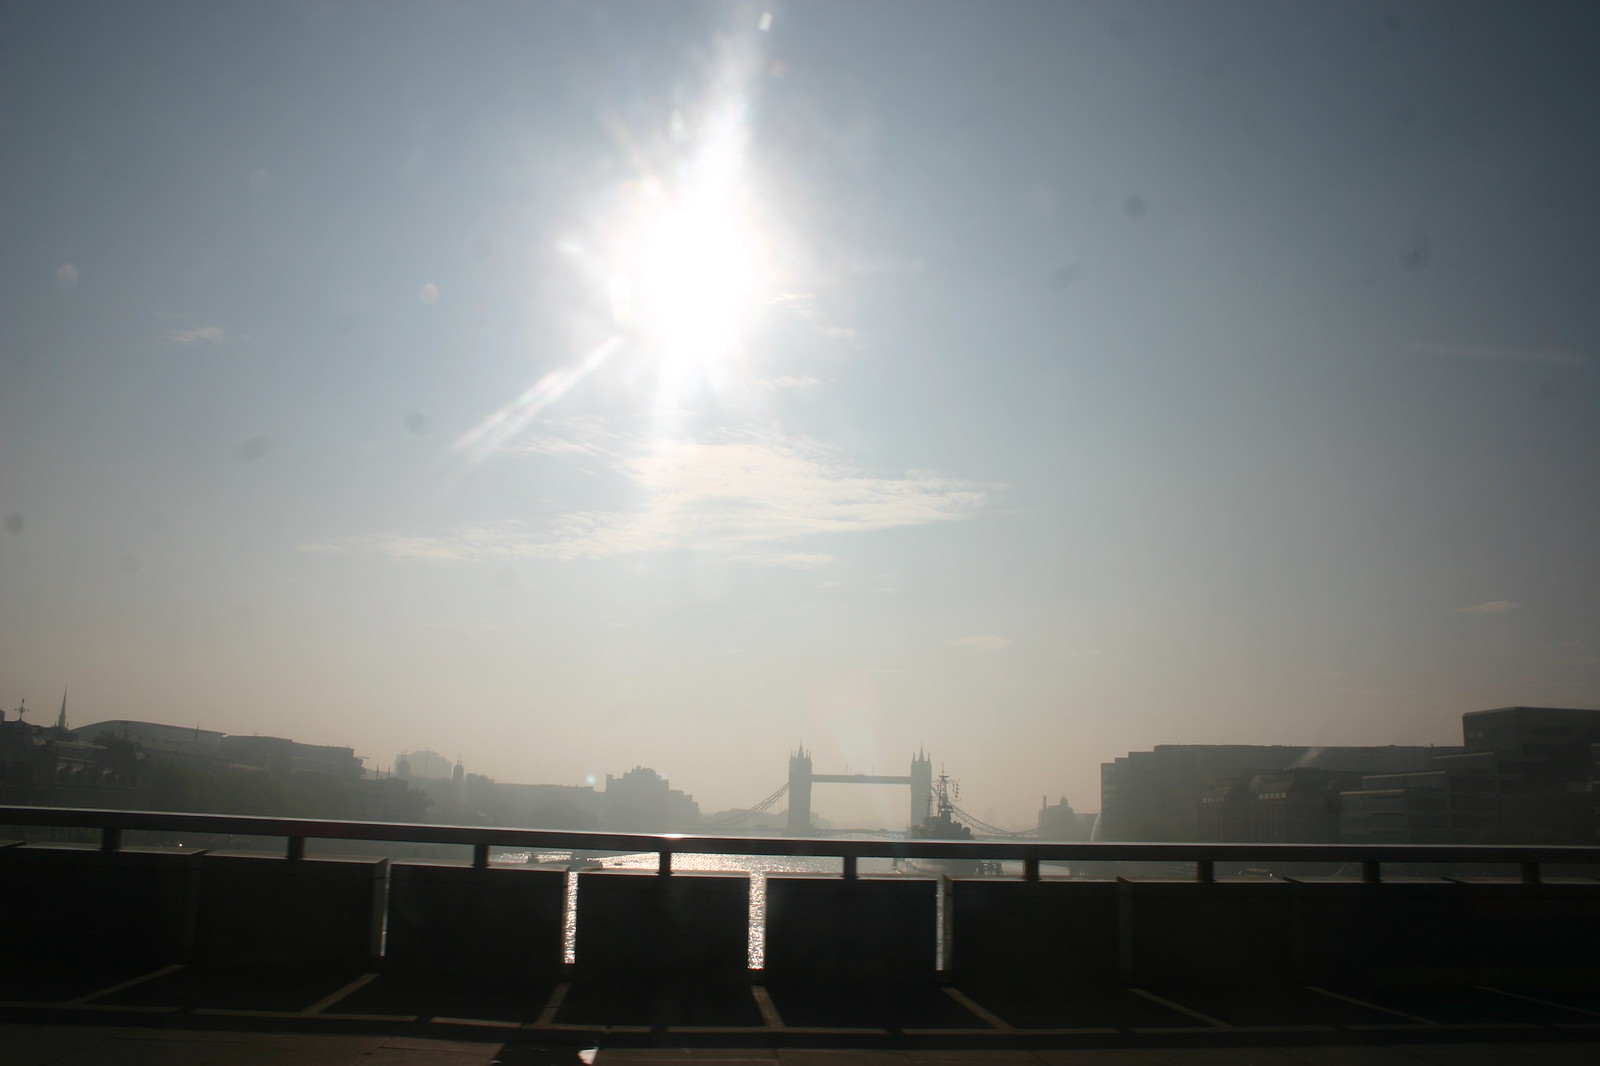 Sunshiney Smoggy Morning 8.30 am Good Friday, London Bridge View